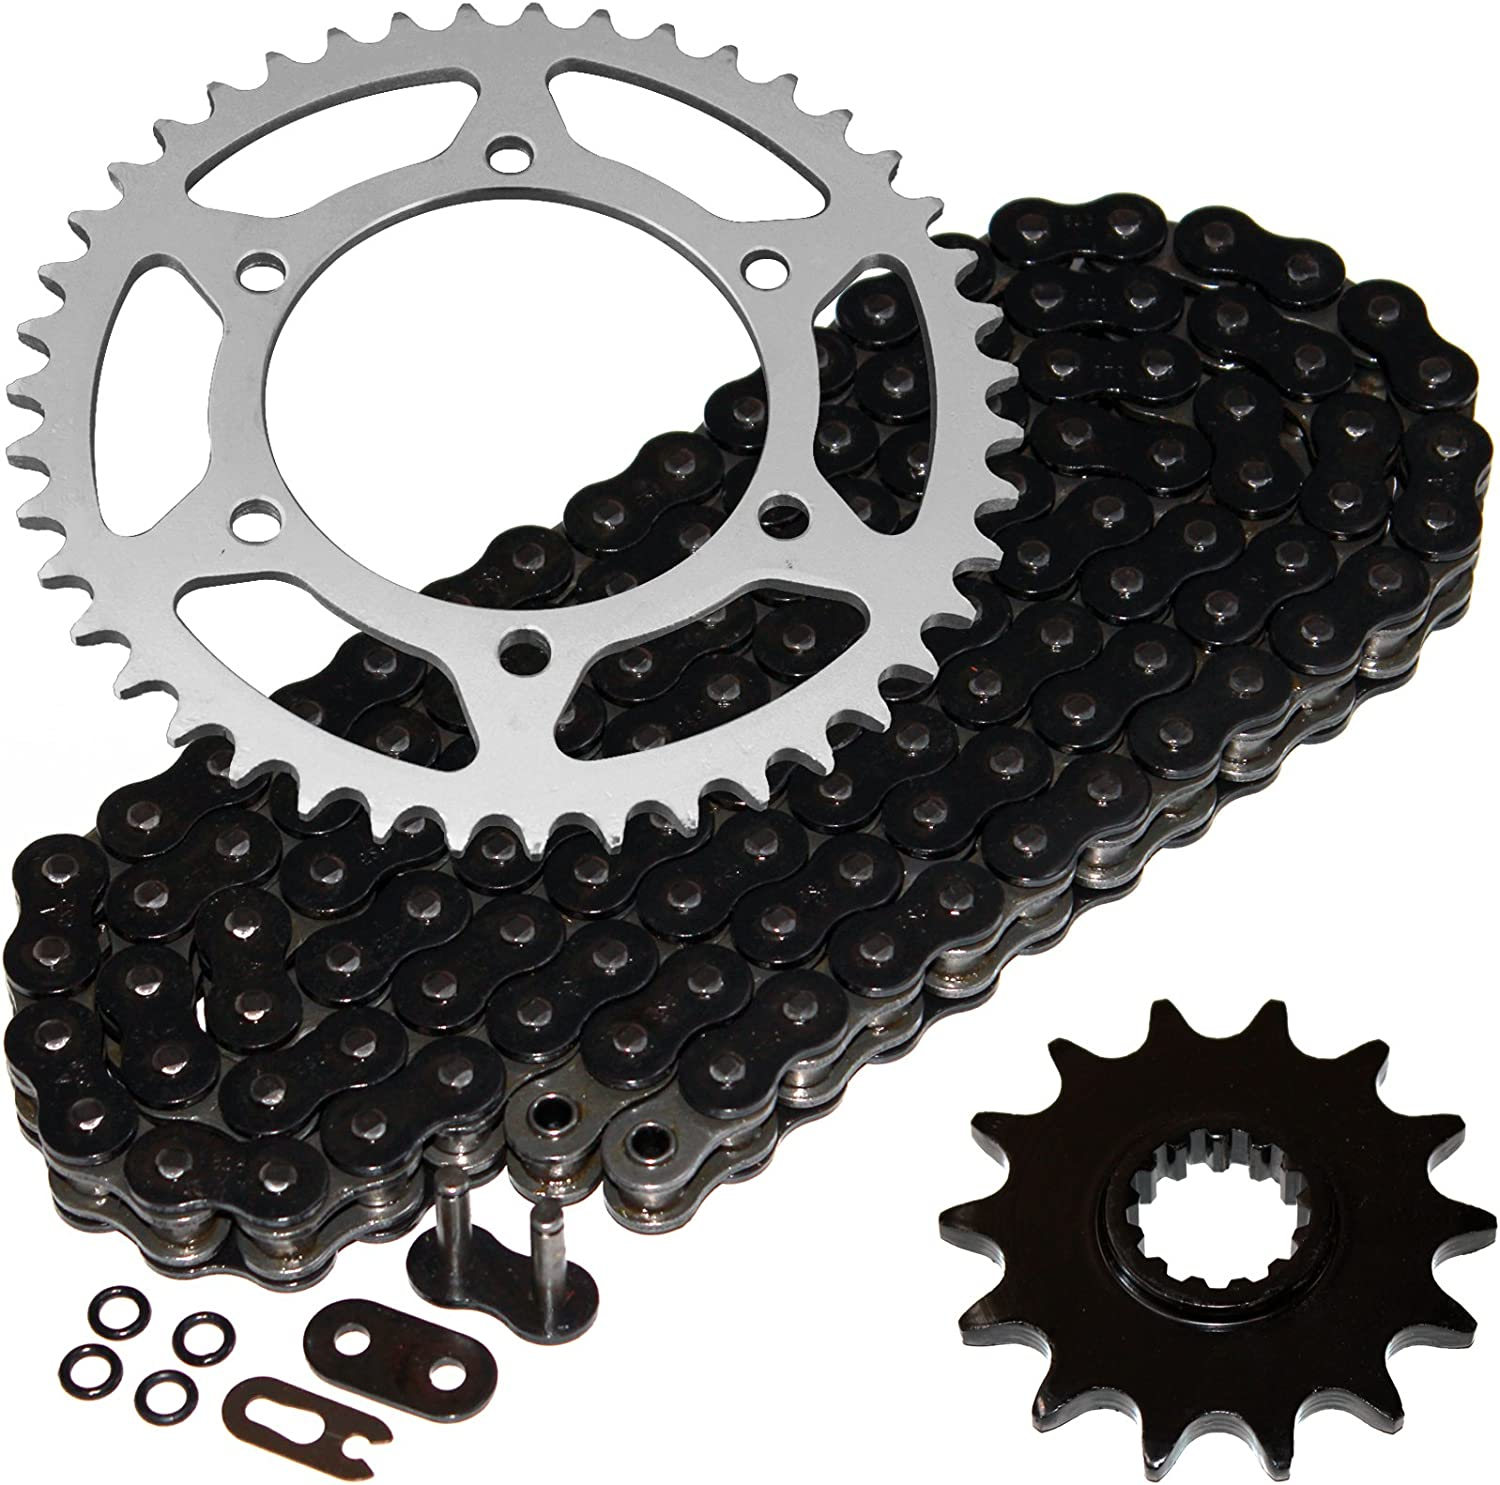 Caltric Black O-Ring Drive Chain /& Sprockets Kit Compatible With Kawasaki Ex250-K Ninja 250R Se 2009-2012